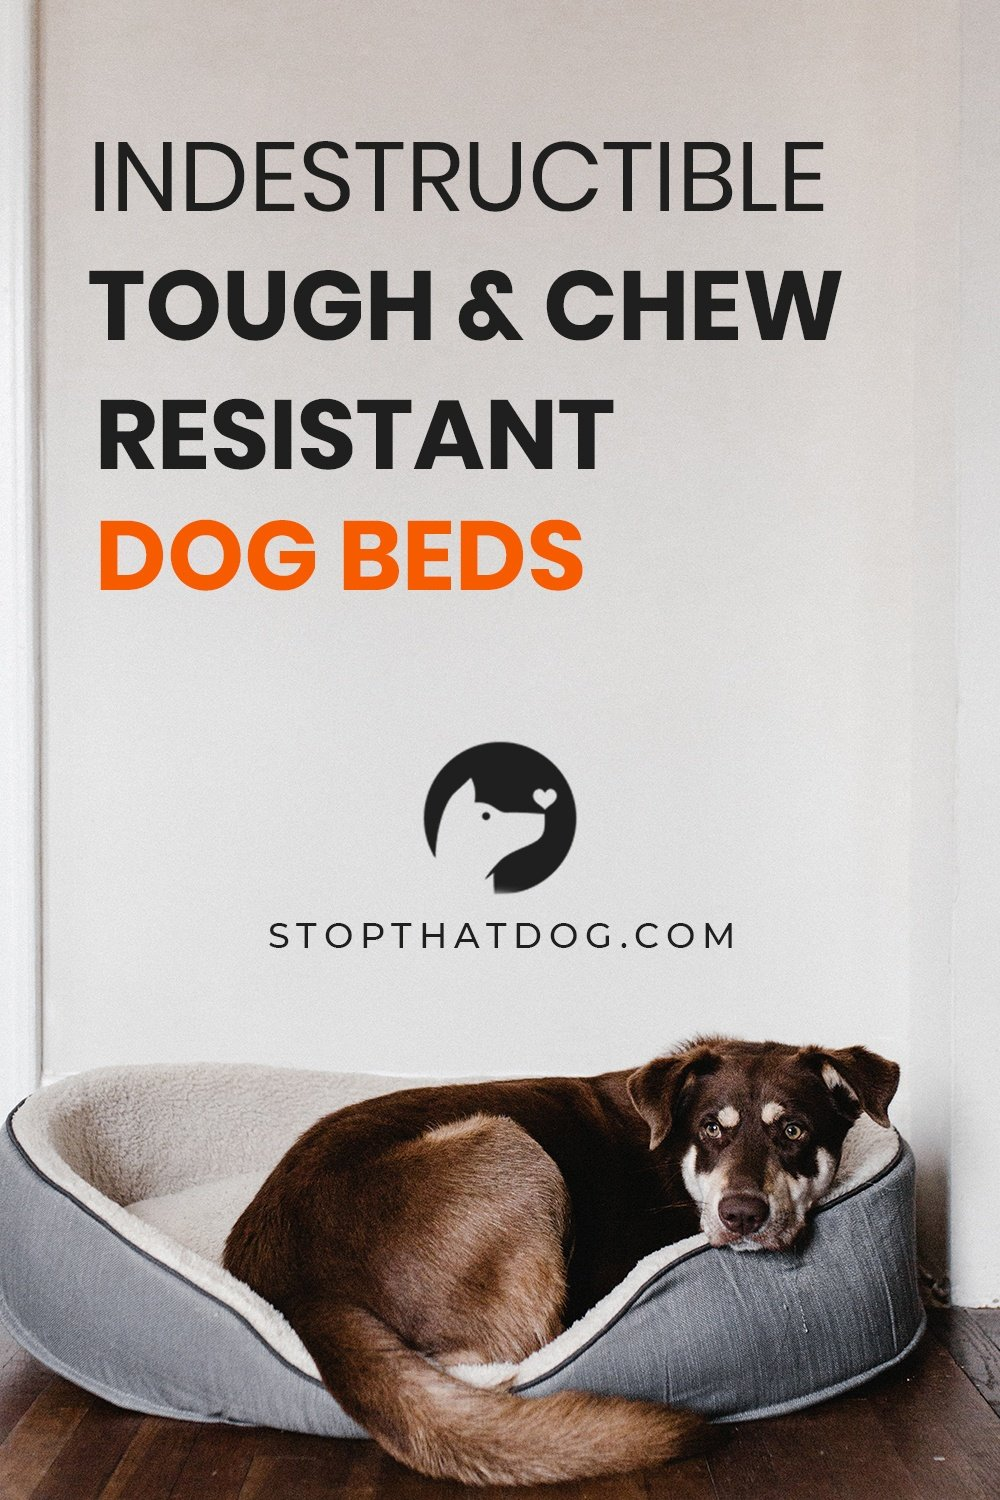 What Are The Best Indestructible & Chew Resistant Dog Beds?